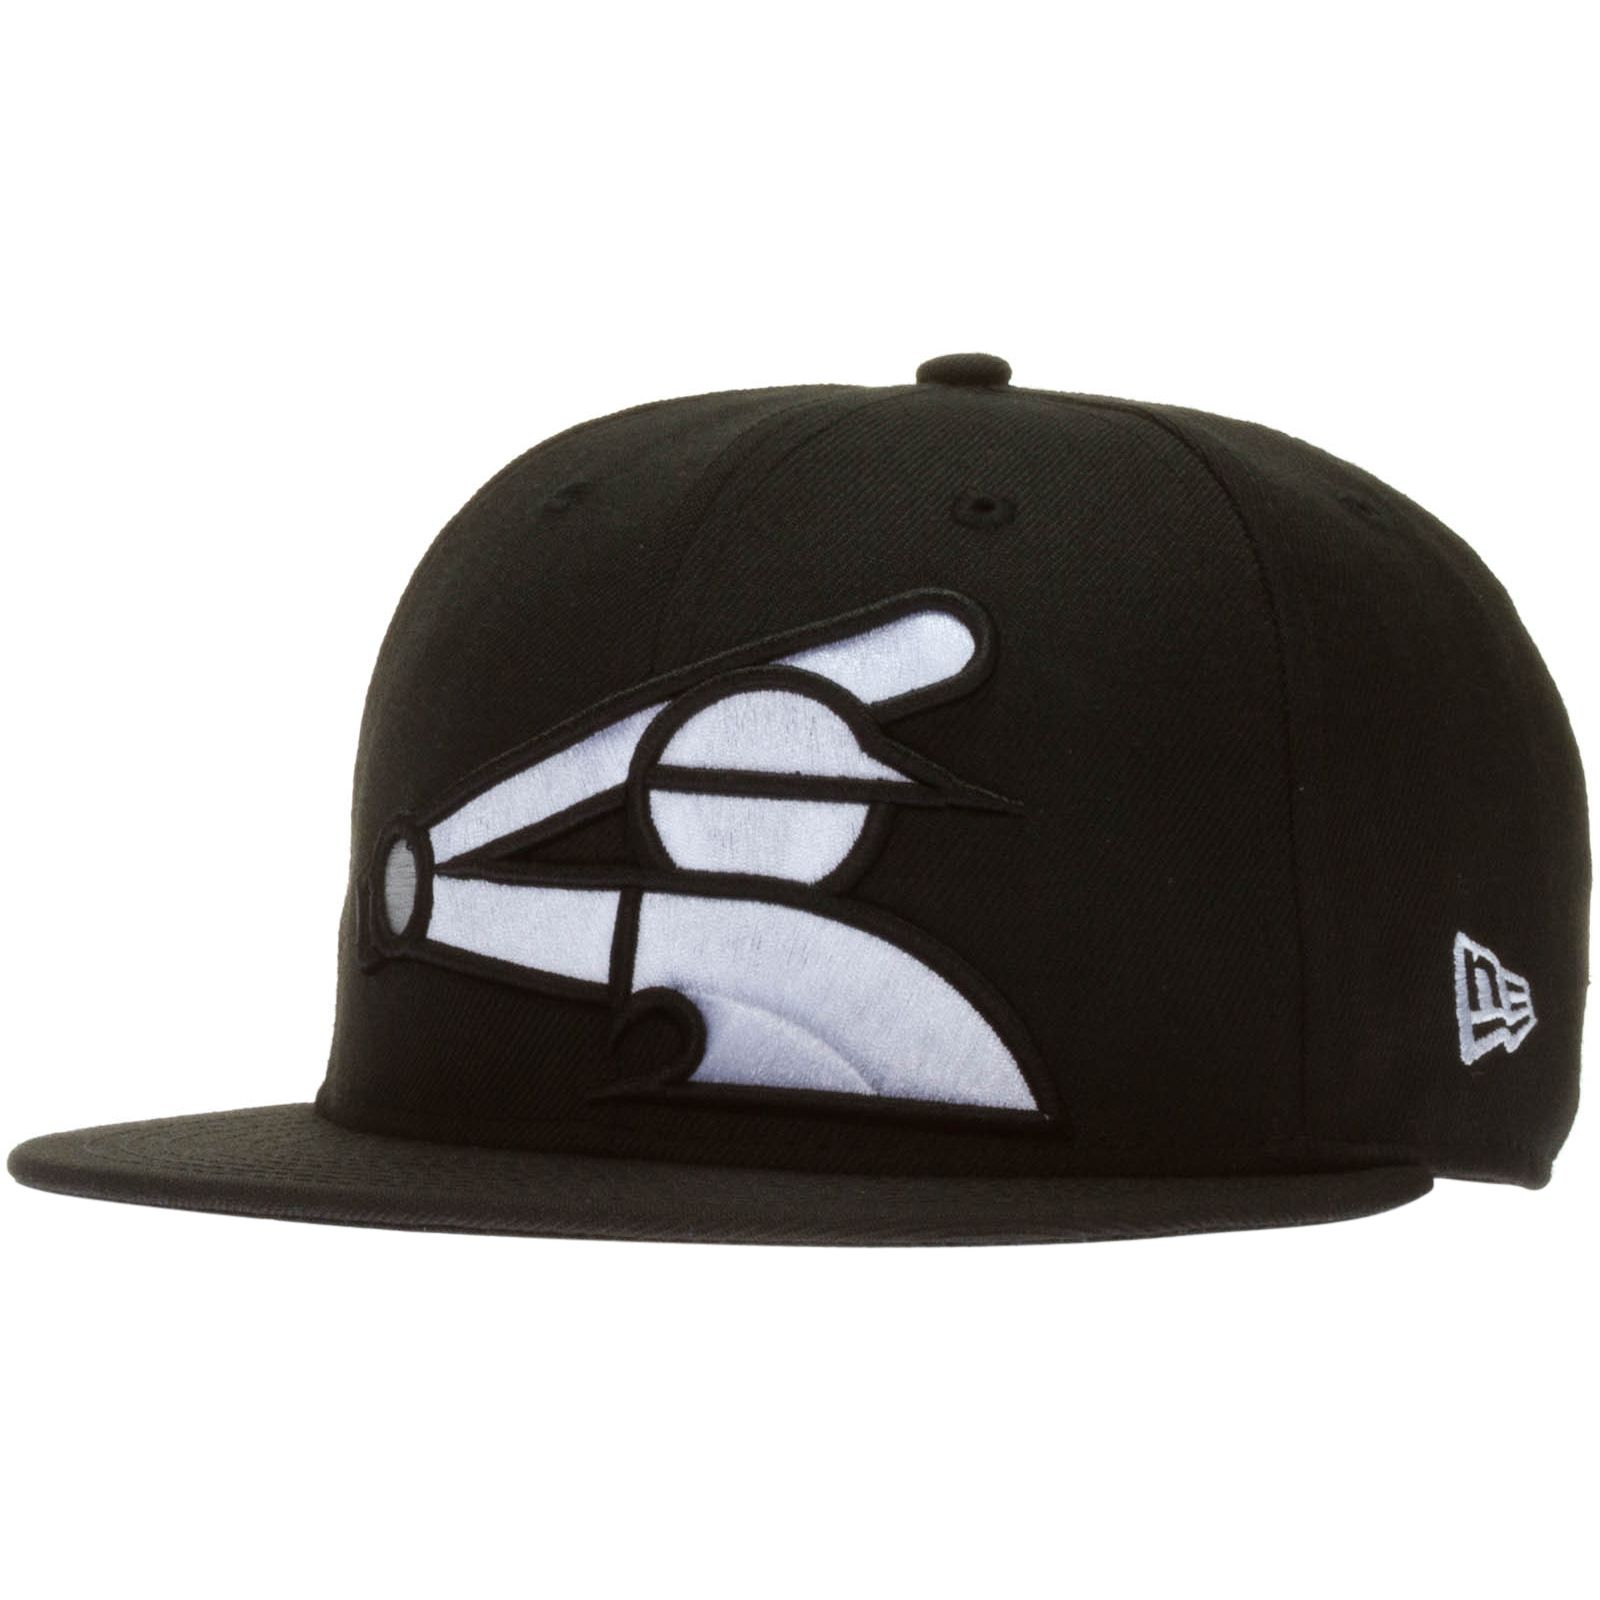 e44d8454a95 Chicago White Sox Black Over-Size Half-Batterman Logo Snapback Hat by New  Era  Chicago  ChicagoWhiteSox  WhiteSox